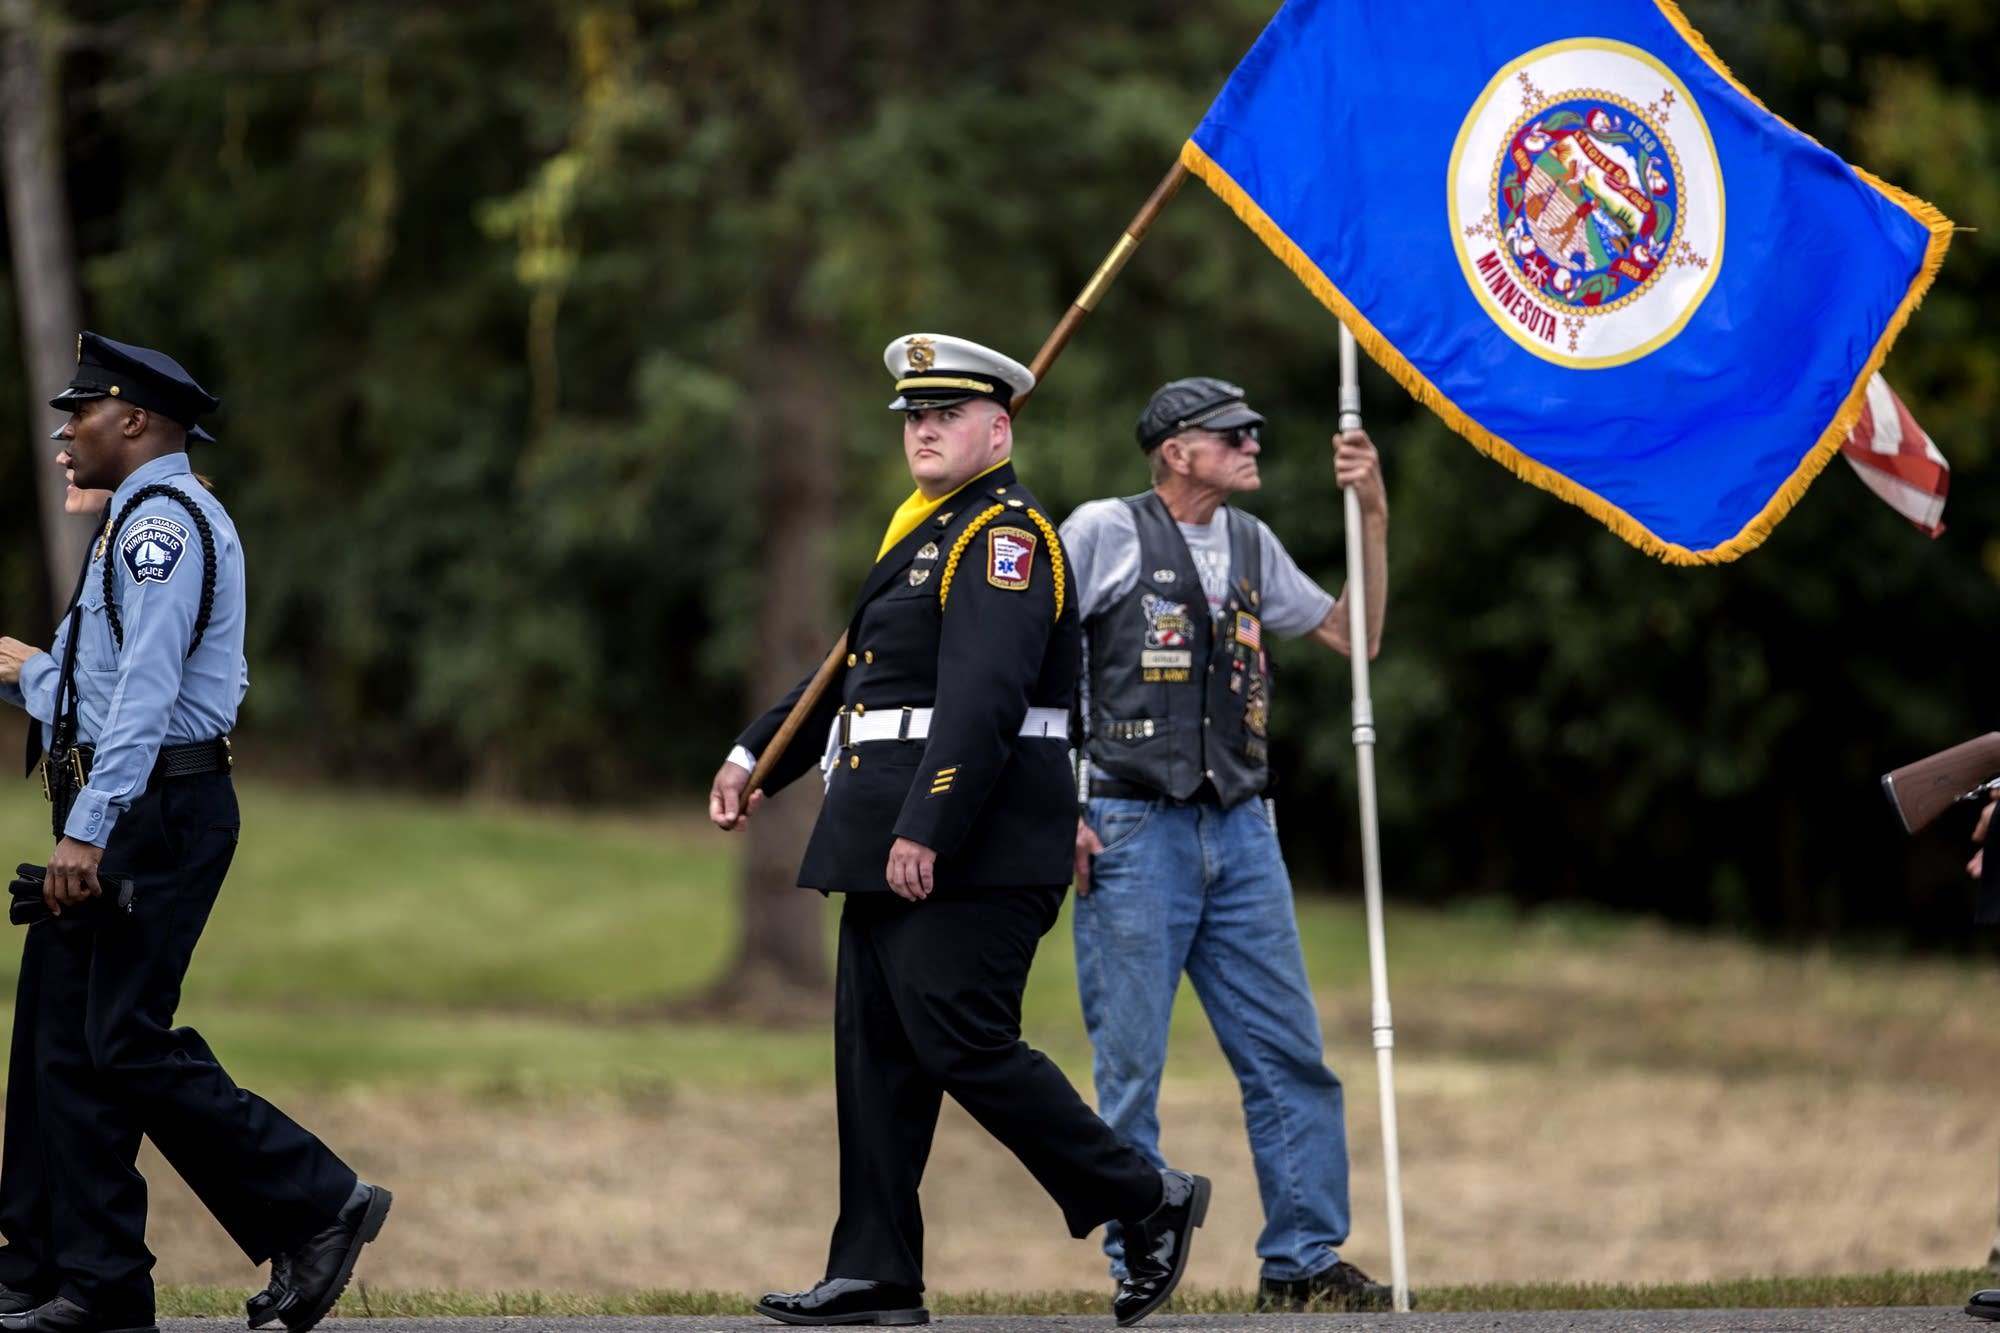 A member of the Minnesota Honor Guard carries the state flag.